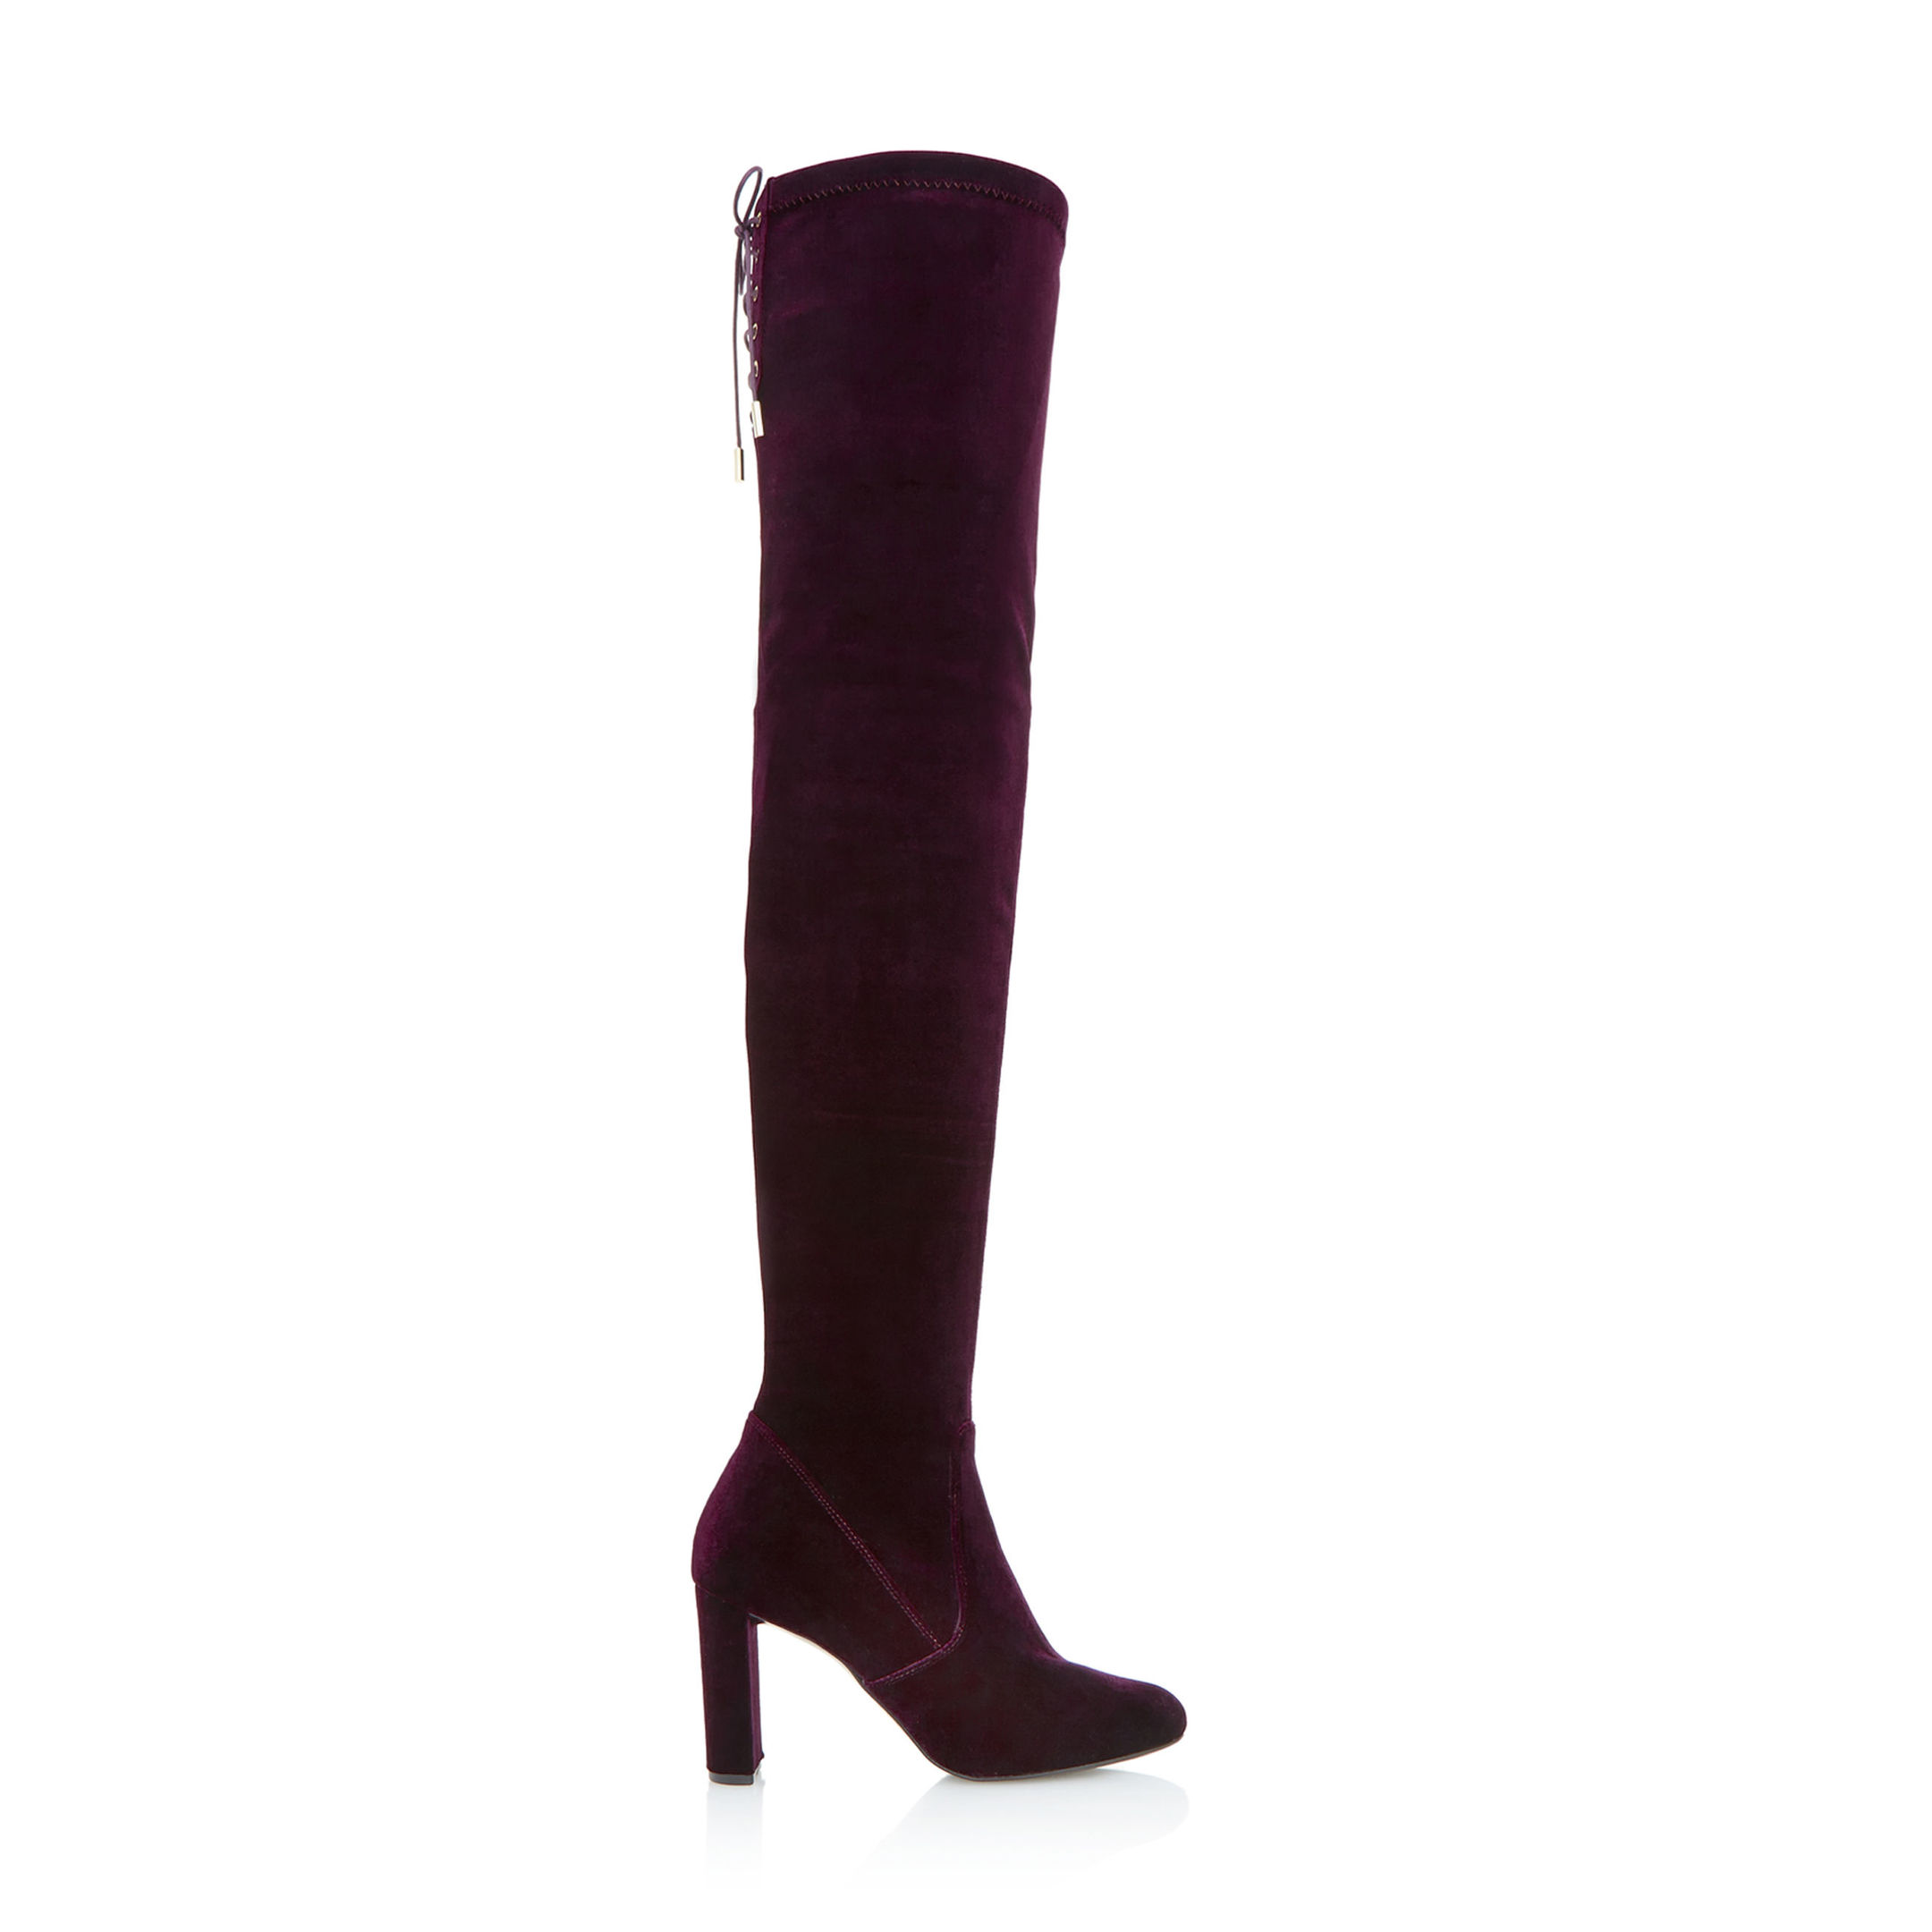 Dune Stella Lace Up Back Over the Knee Burgundy Boots, available from dunelondon.com.